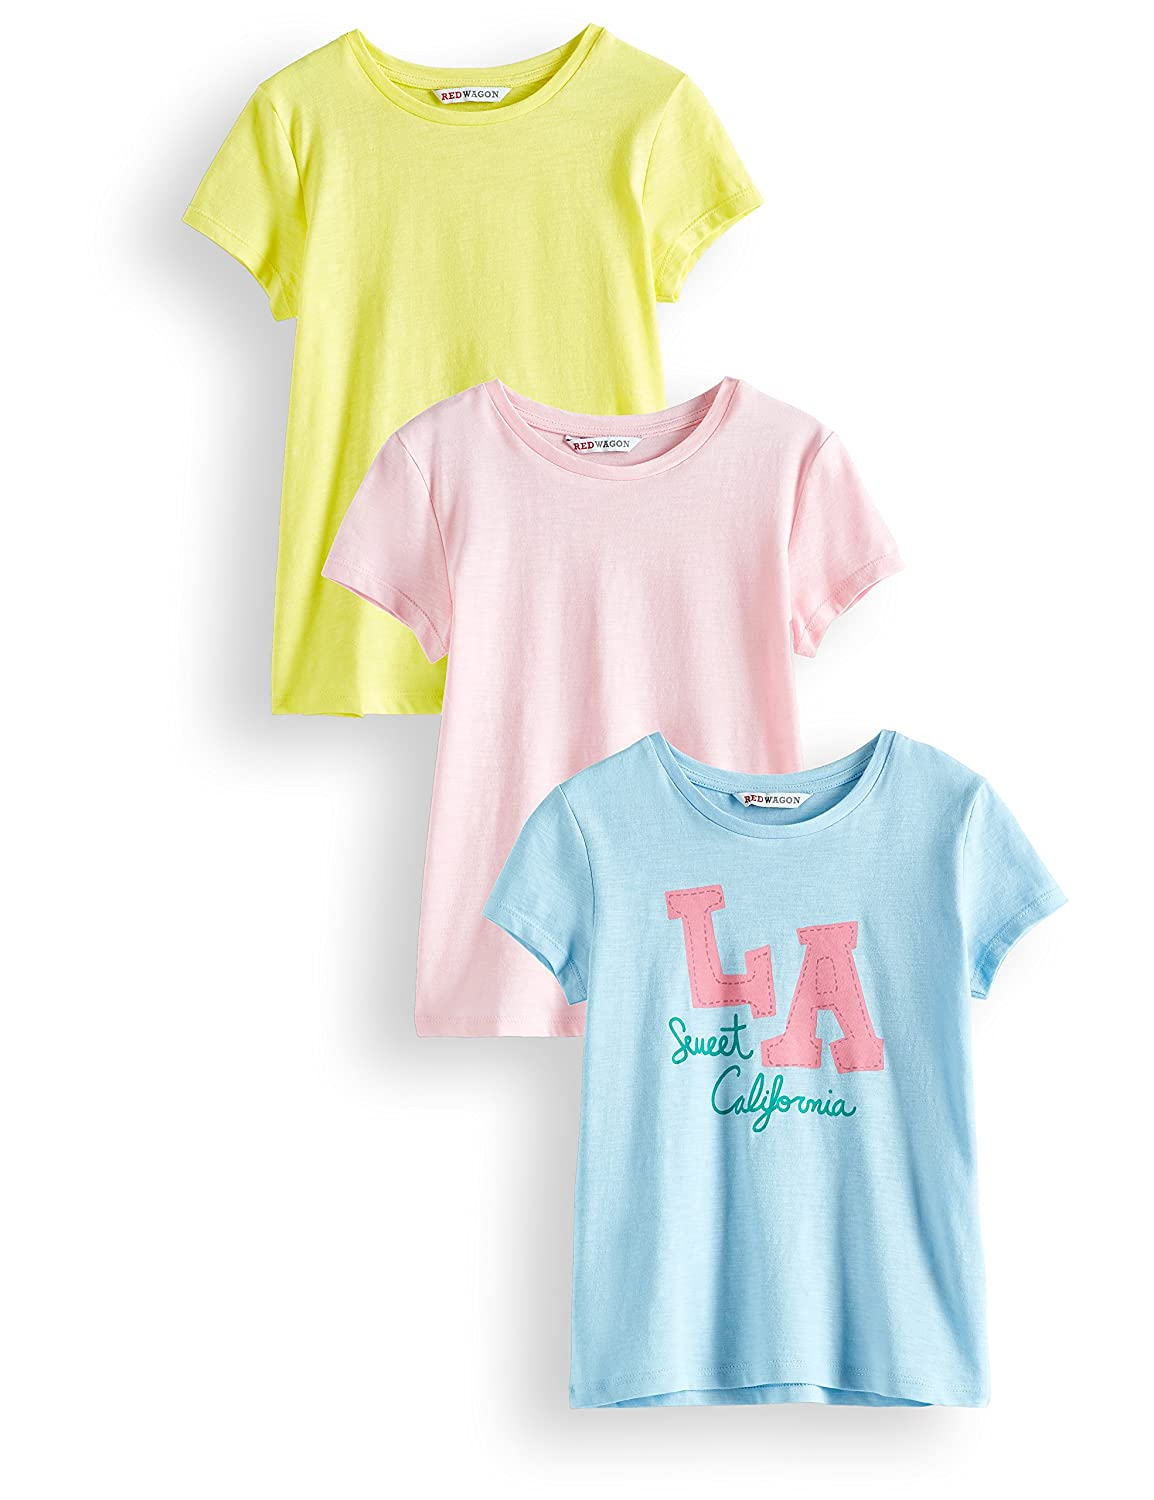 Pack of 3 RED WAGON Girls T-shirt